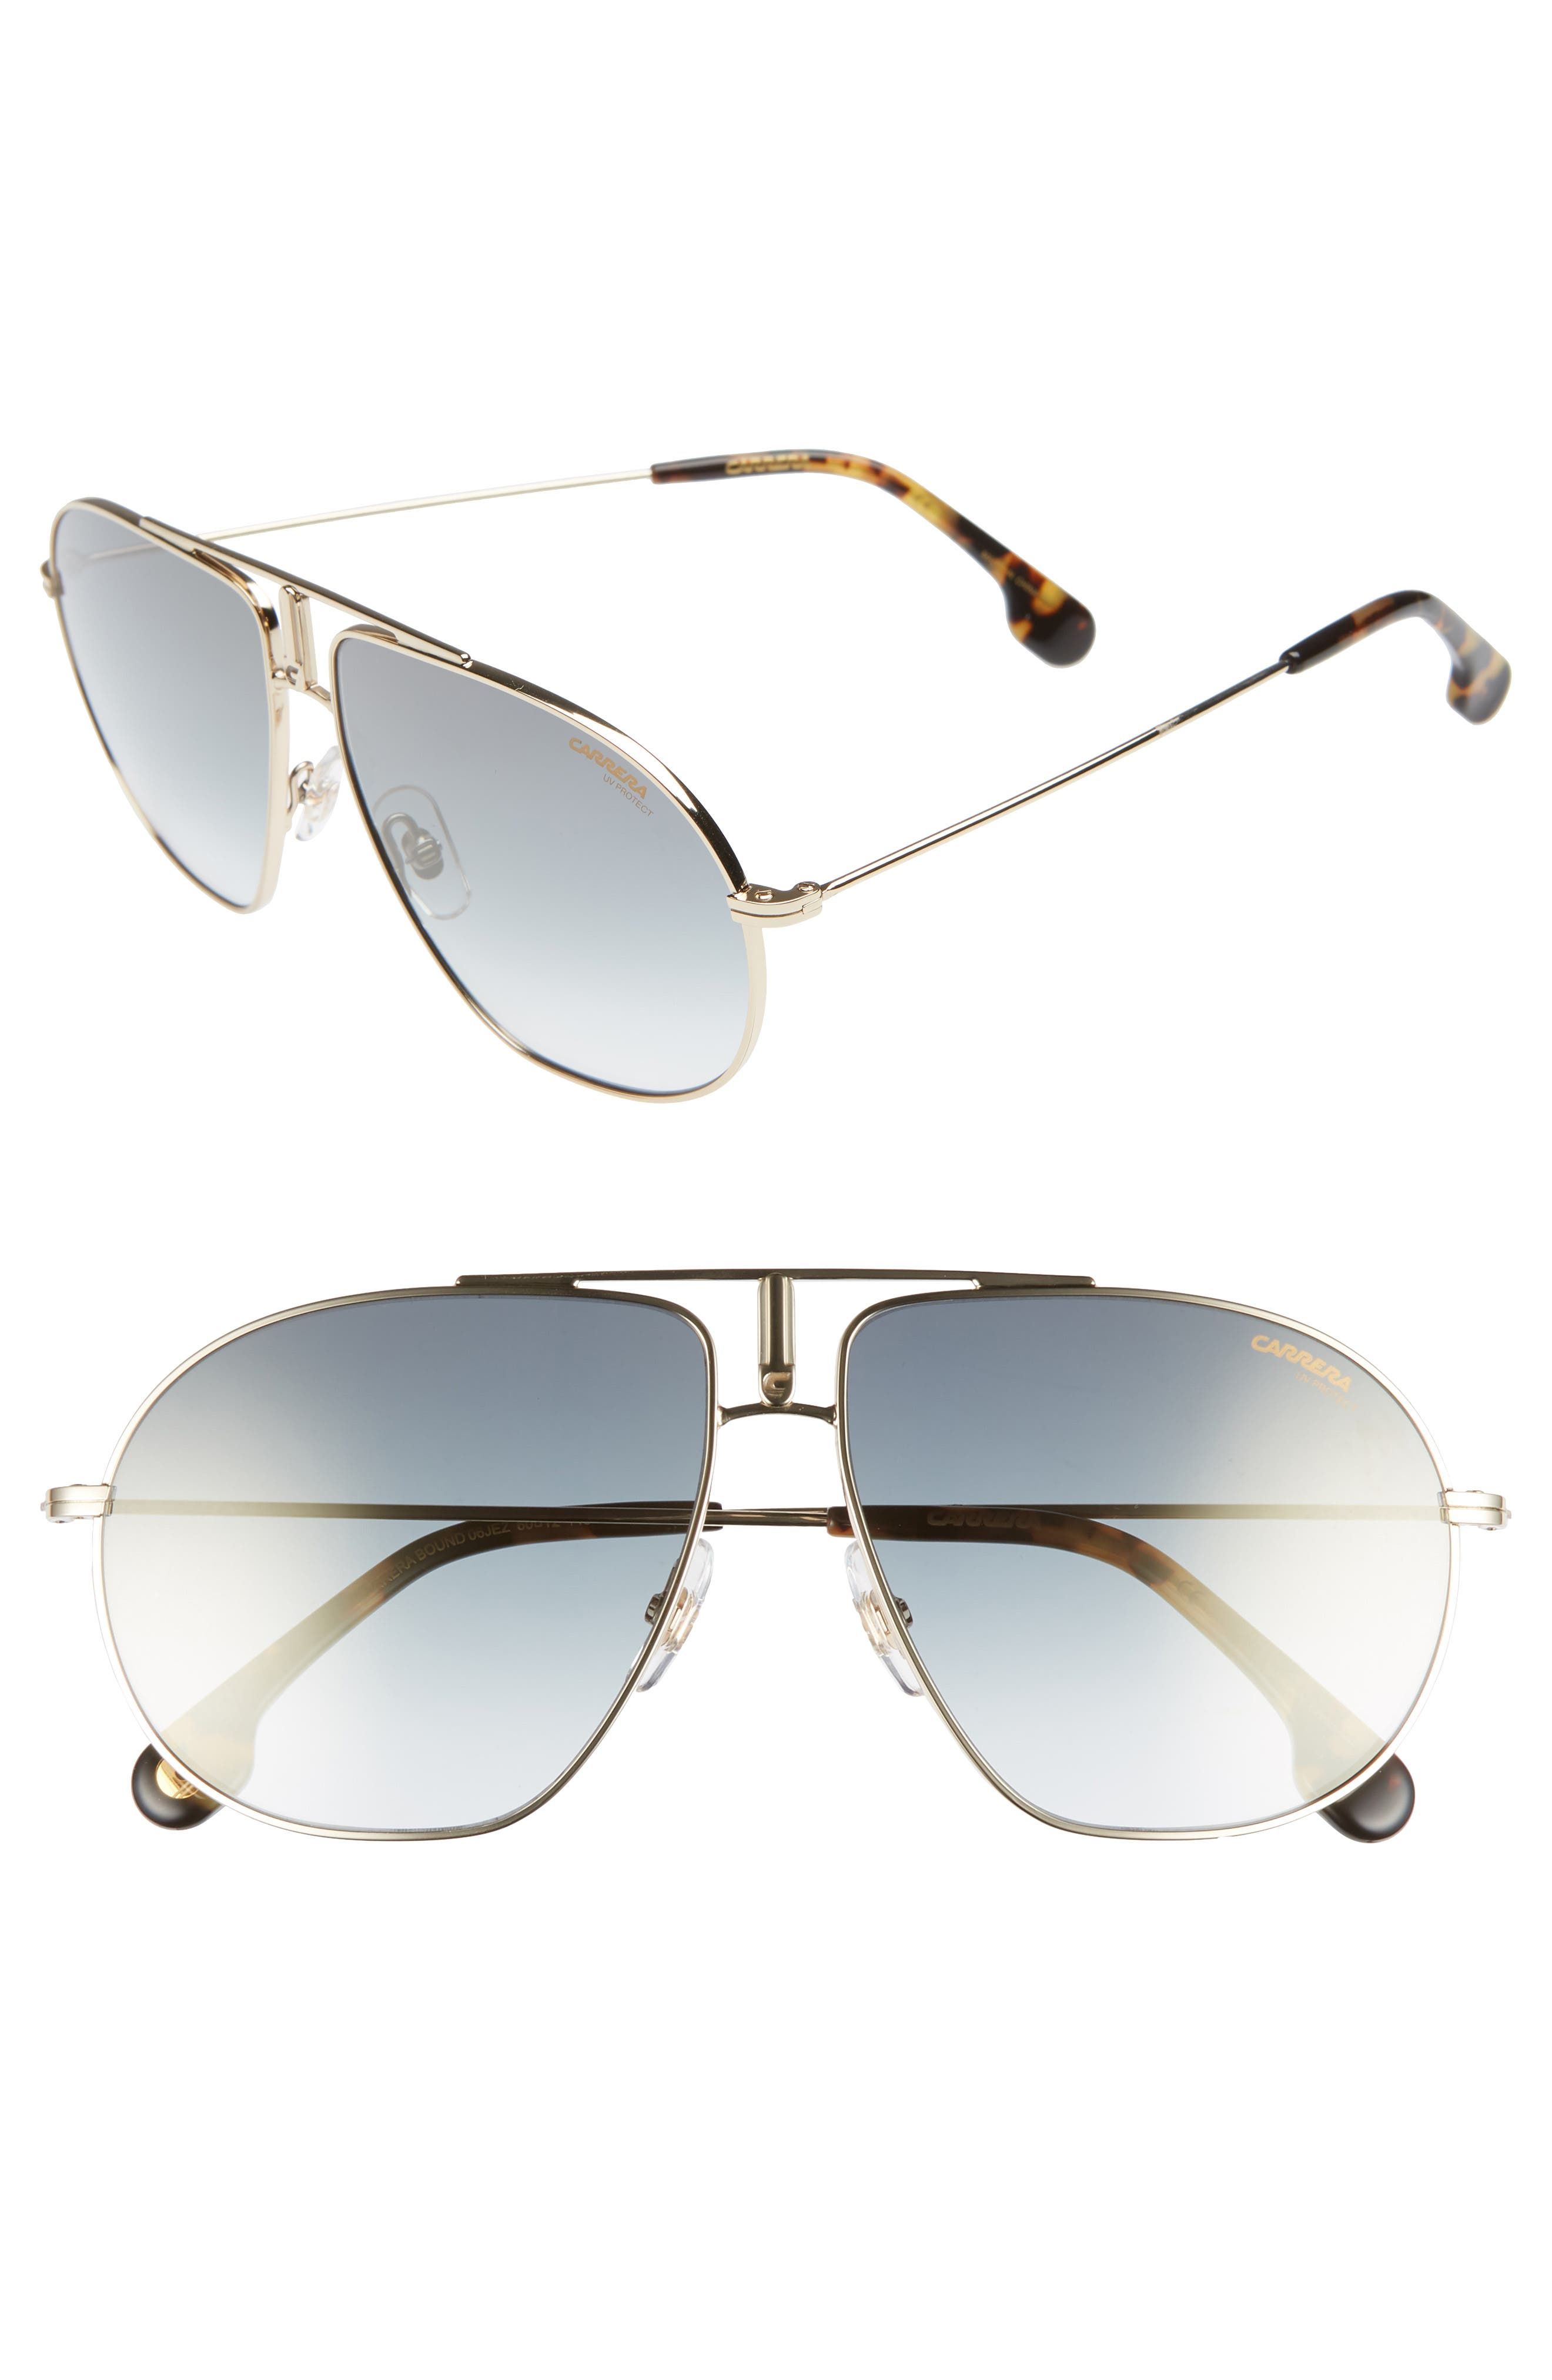 Bounds 60mm Gradient Aviator Sunglasses,                         Main,                         color, GOLD